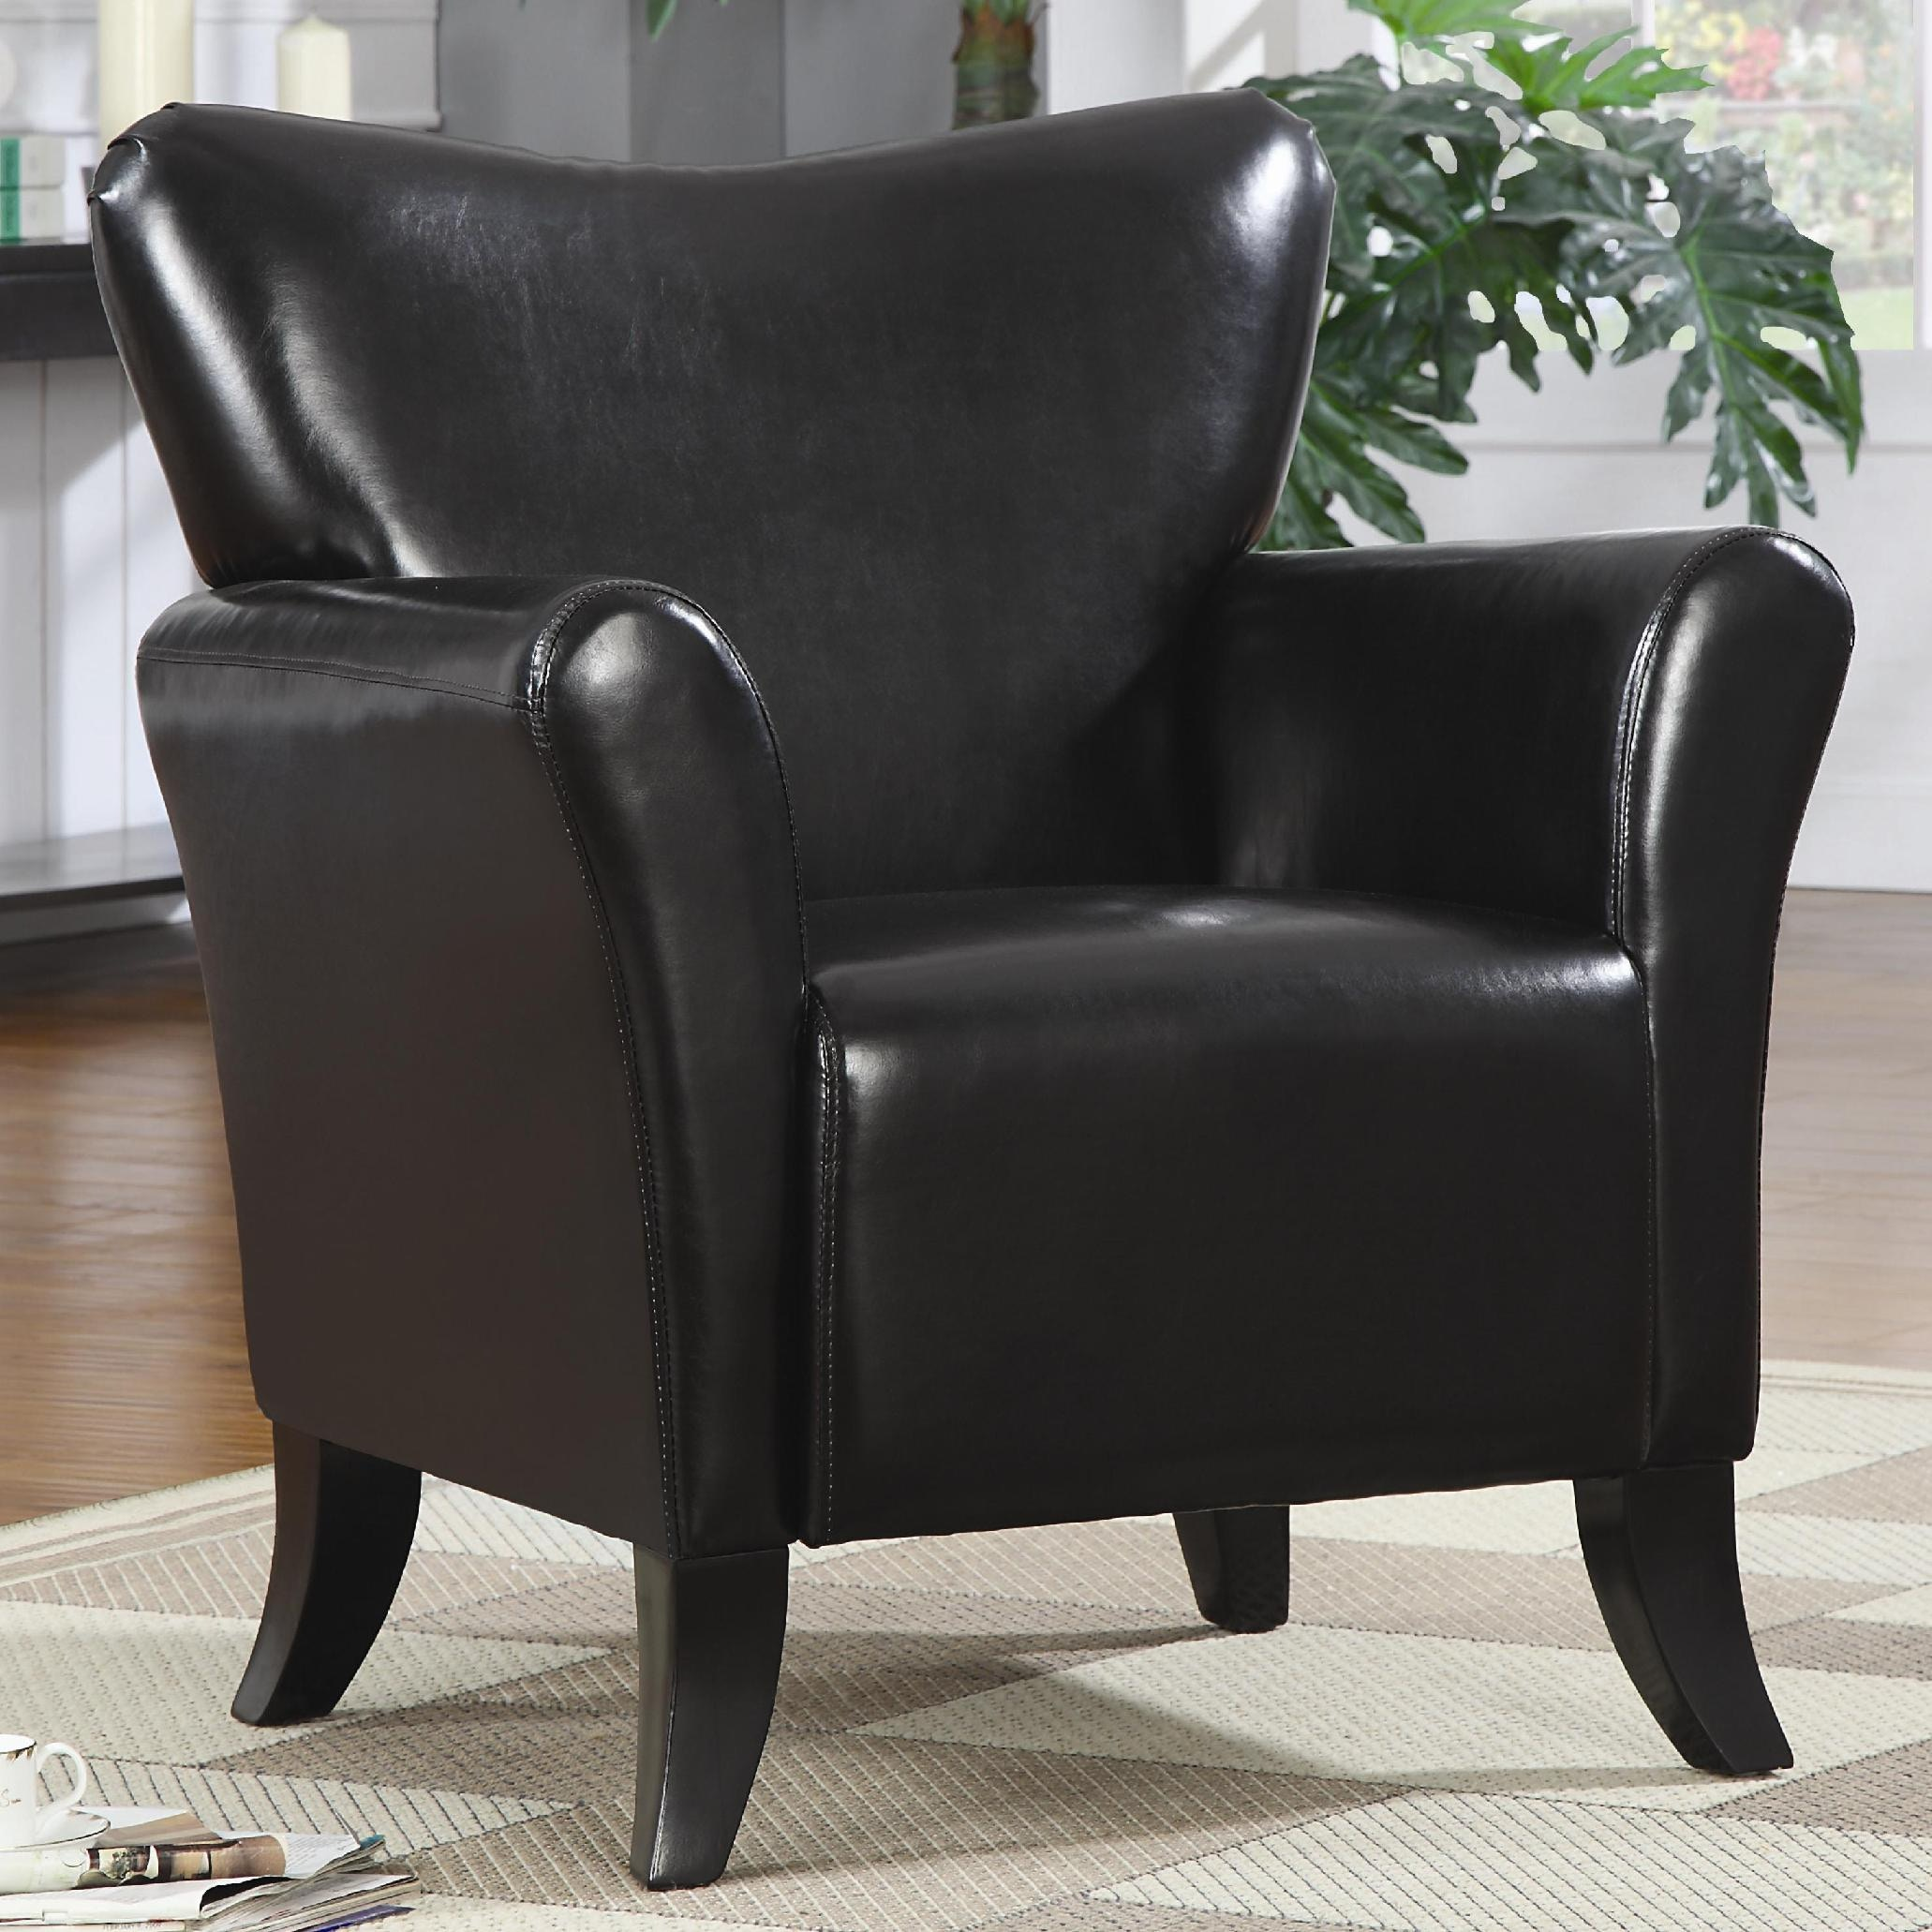 Beautiful Coaster Living Room Accent Chair 900253 At Rider Furniture